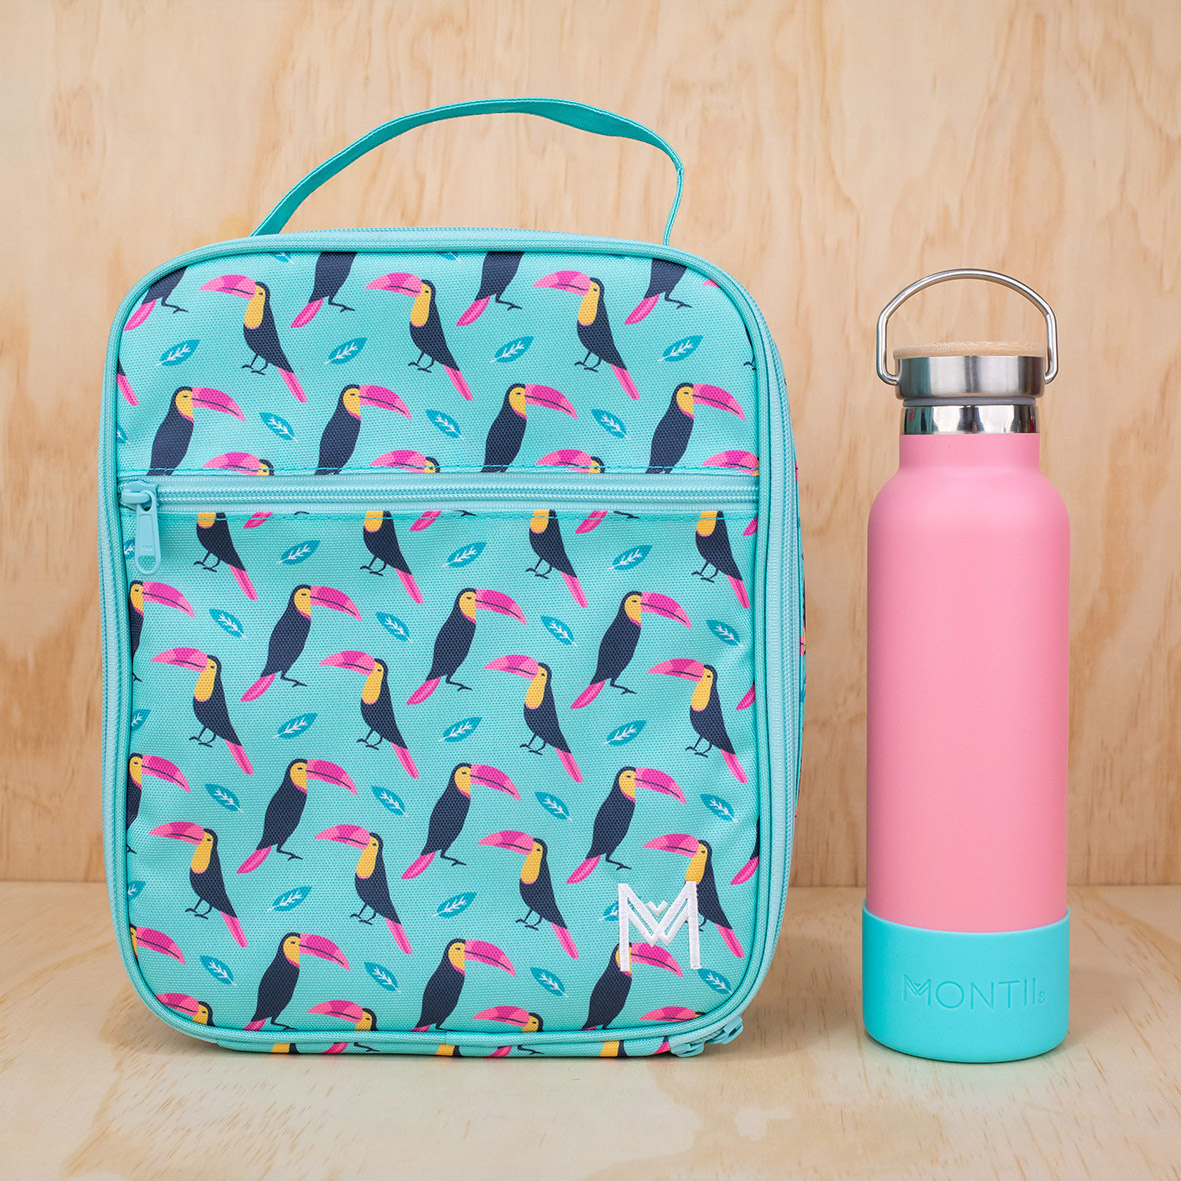 Montii insulated Lunch Bag - Toucan-4